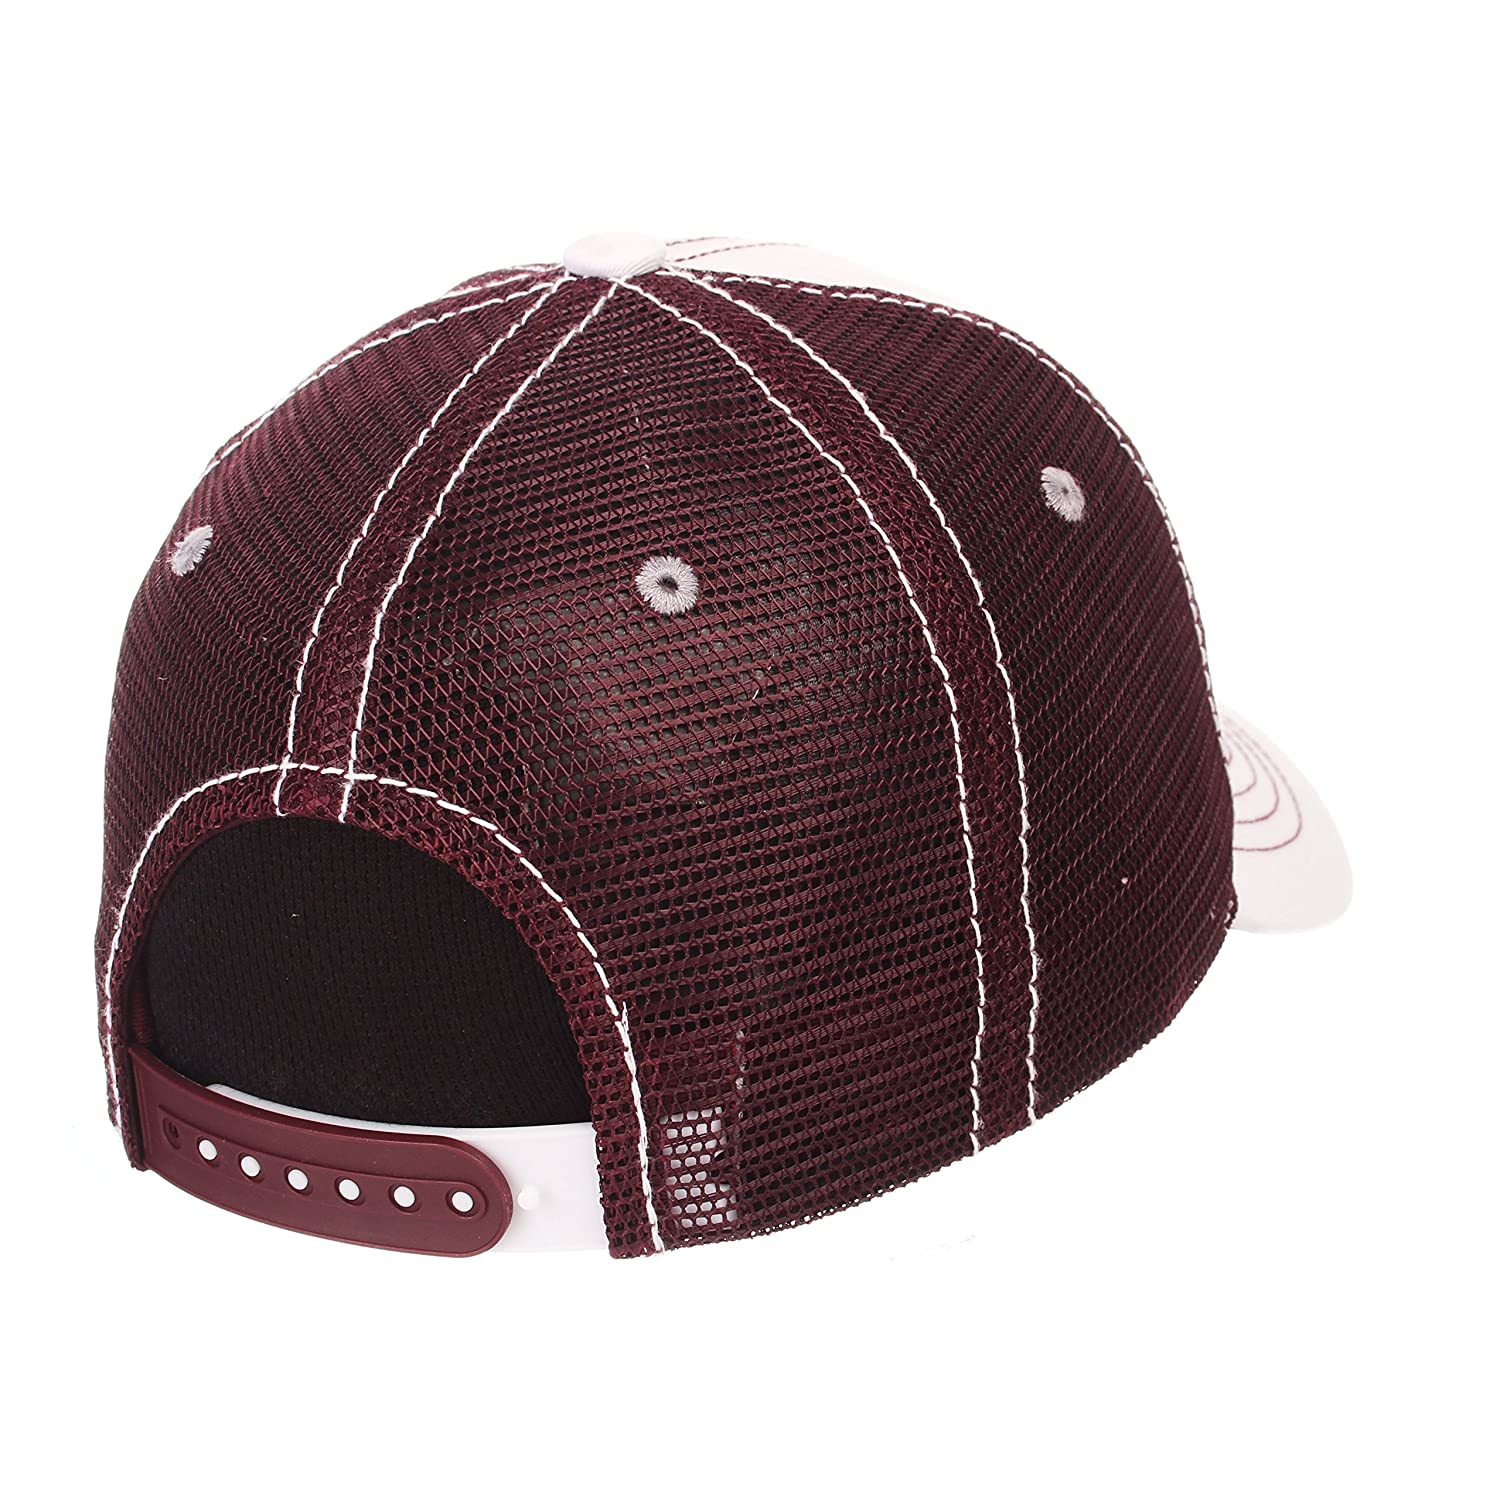 079aeb8addf Amazon.com   Zephyr Men s Mississippi State Bulldogs WHITEBOARD Adjustable  HAT   Sports   Outdoors